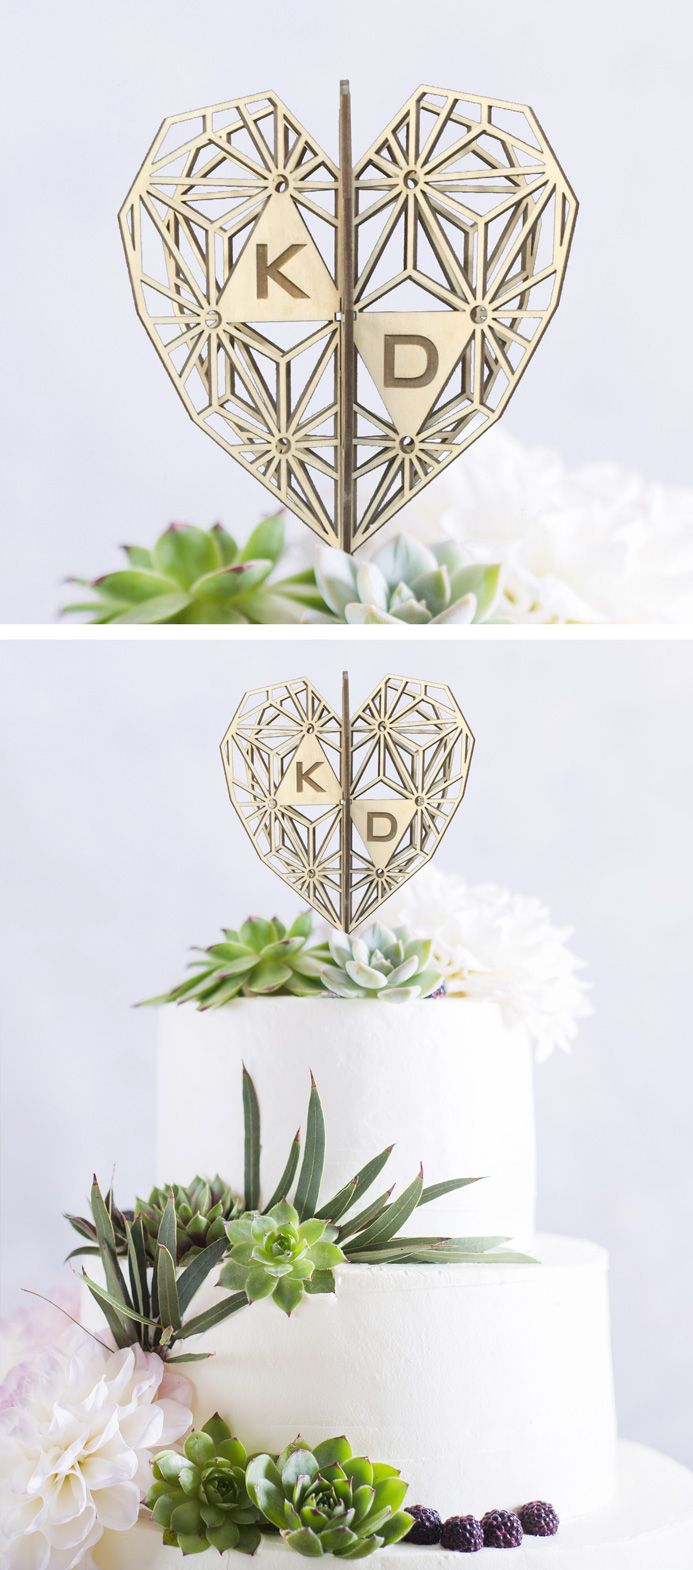 Our customizable Stella Heart cake topper looks great at every angle. It can be personalized, and is available in light wood (shown), dark wood, mirror silver, gold, or or pretty much any color you choose. Order yours on Etsy and we'll customize it for you! http://etsy.me/2nu0kZC